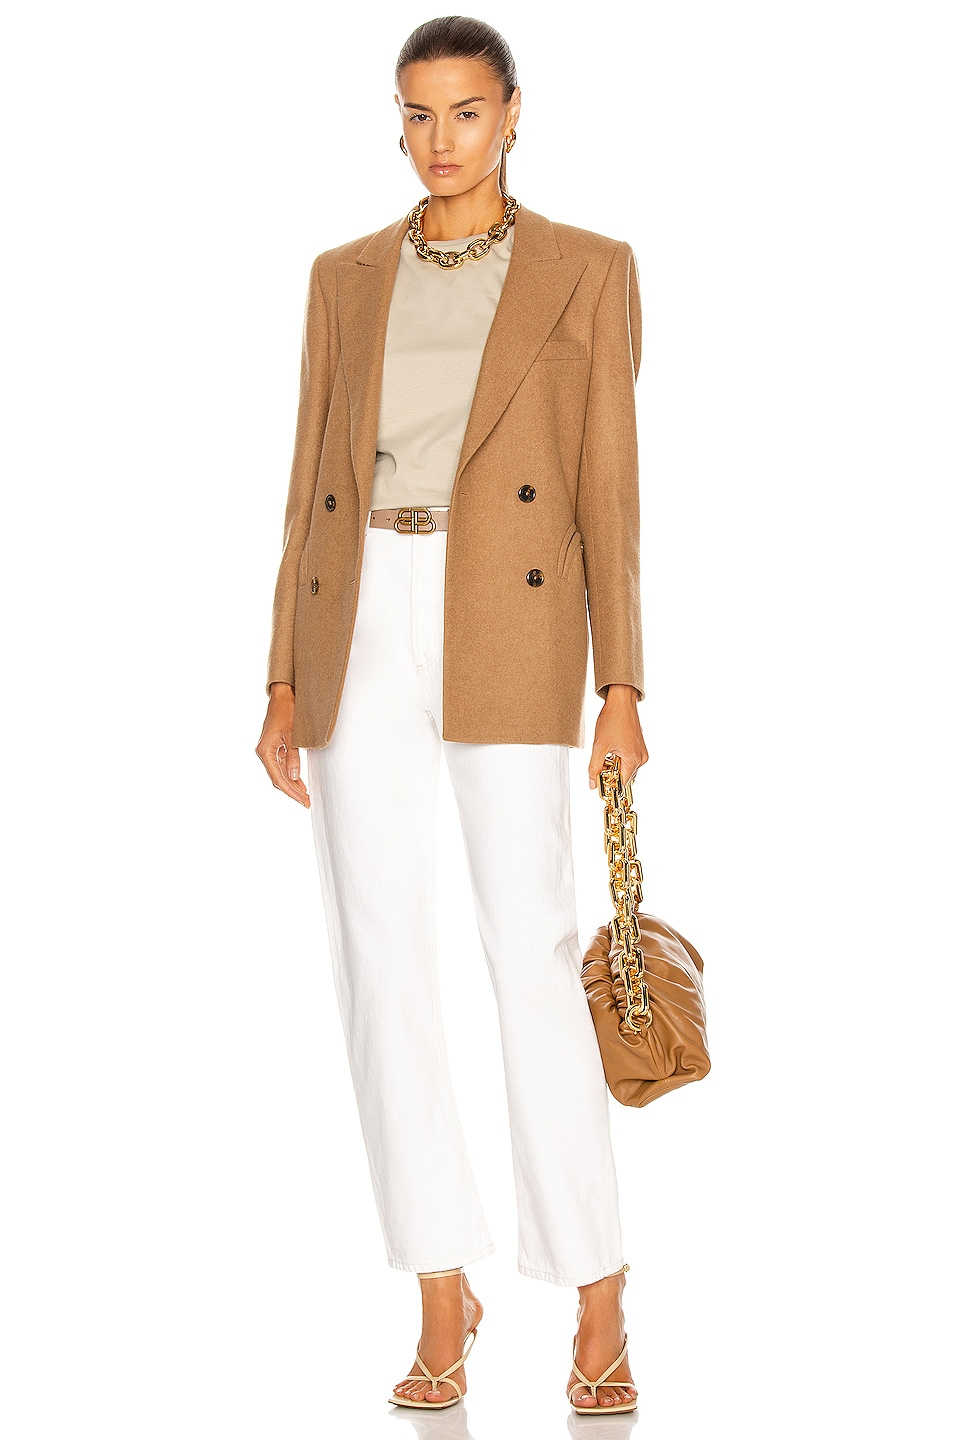 Image 5 of Blaze Milano Essential Cholita Everyday Blazer in Camel